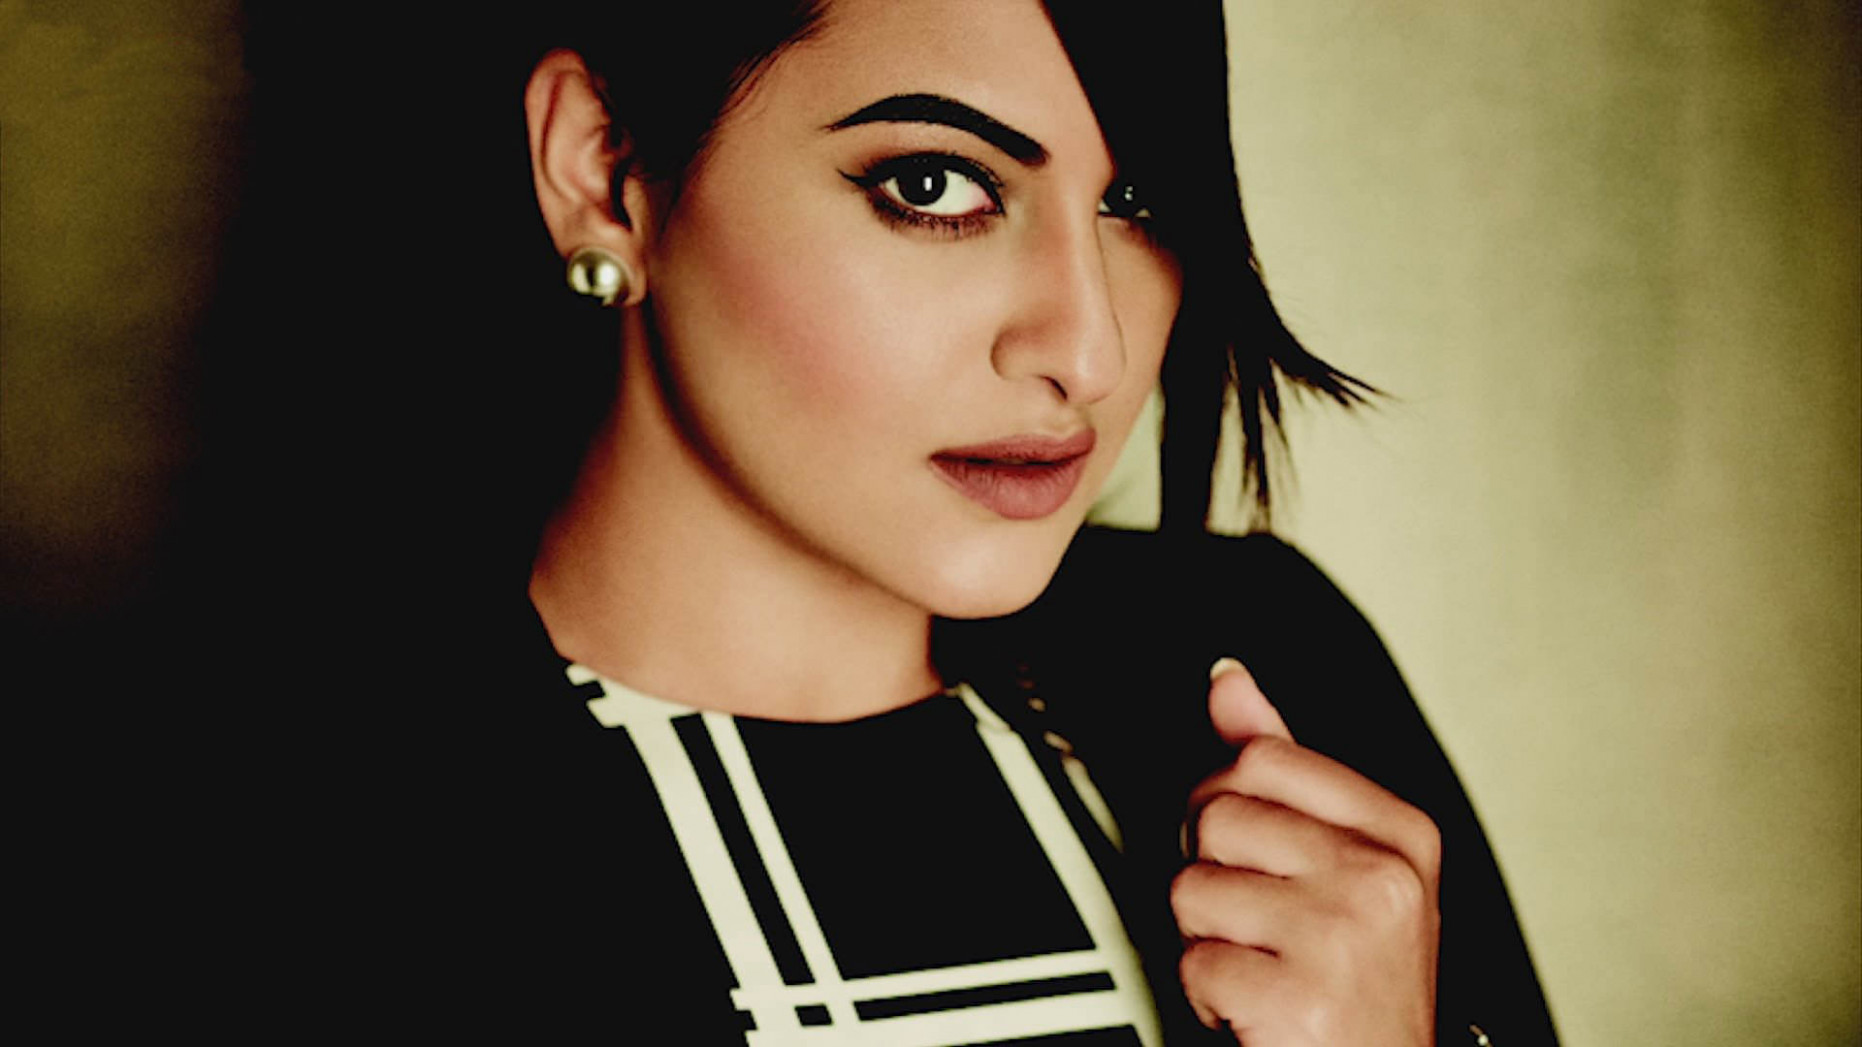 Free Hot Hd Wallpapers of Bollywood Actress Sonakshi Sinha